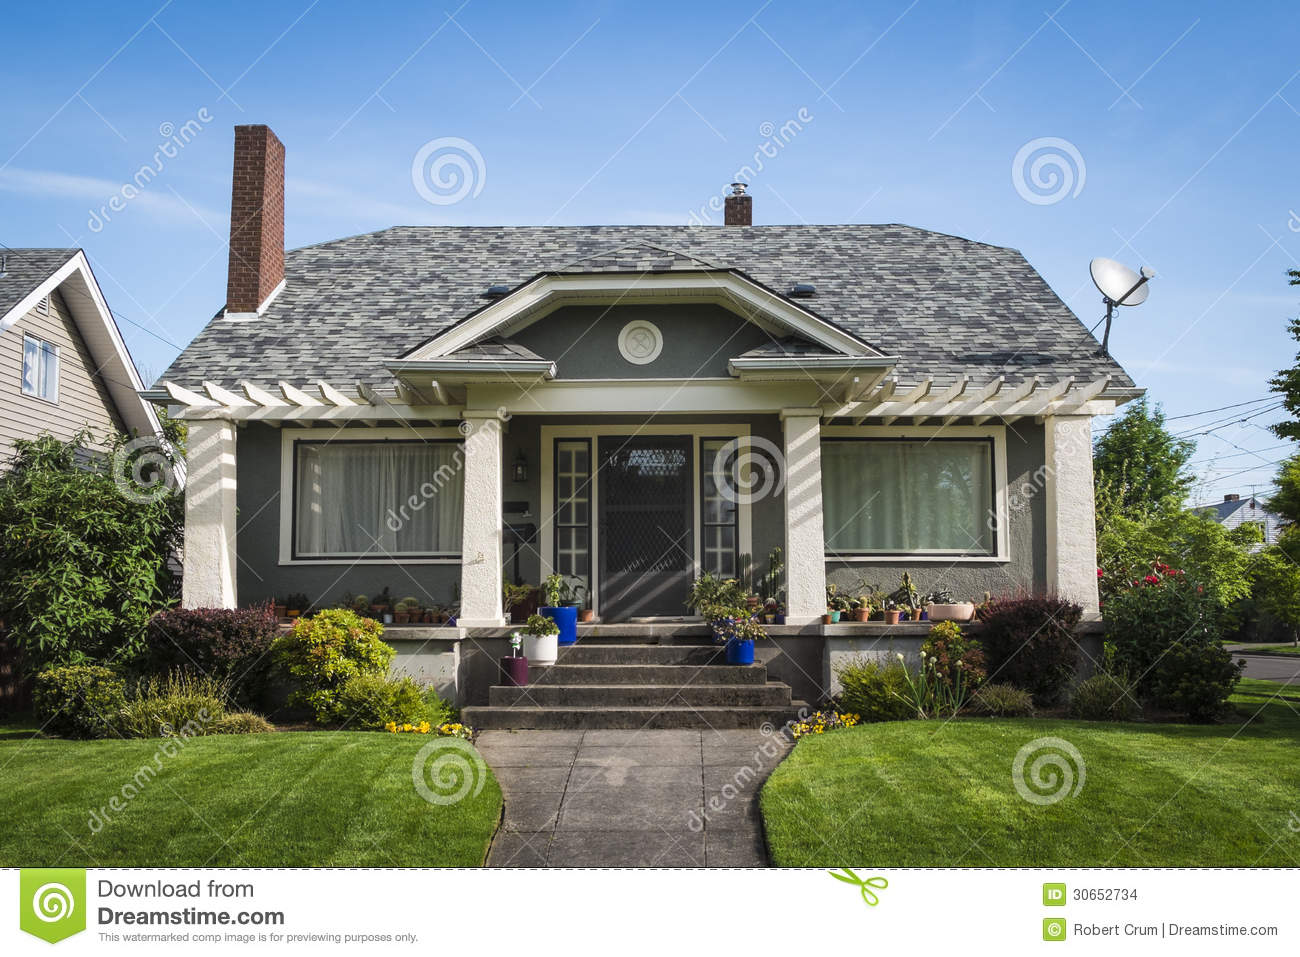 American craftsman house stock images image 30652734 for American craftsman homes